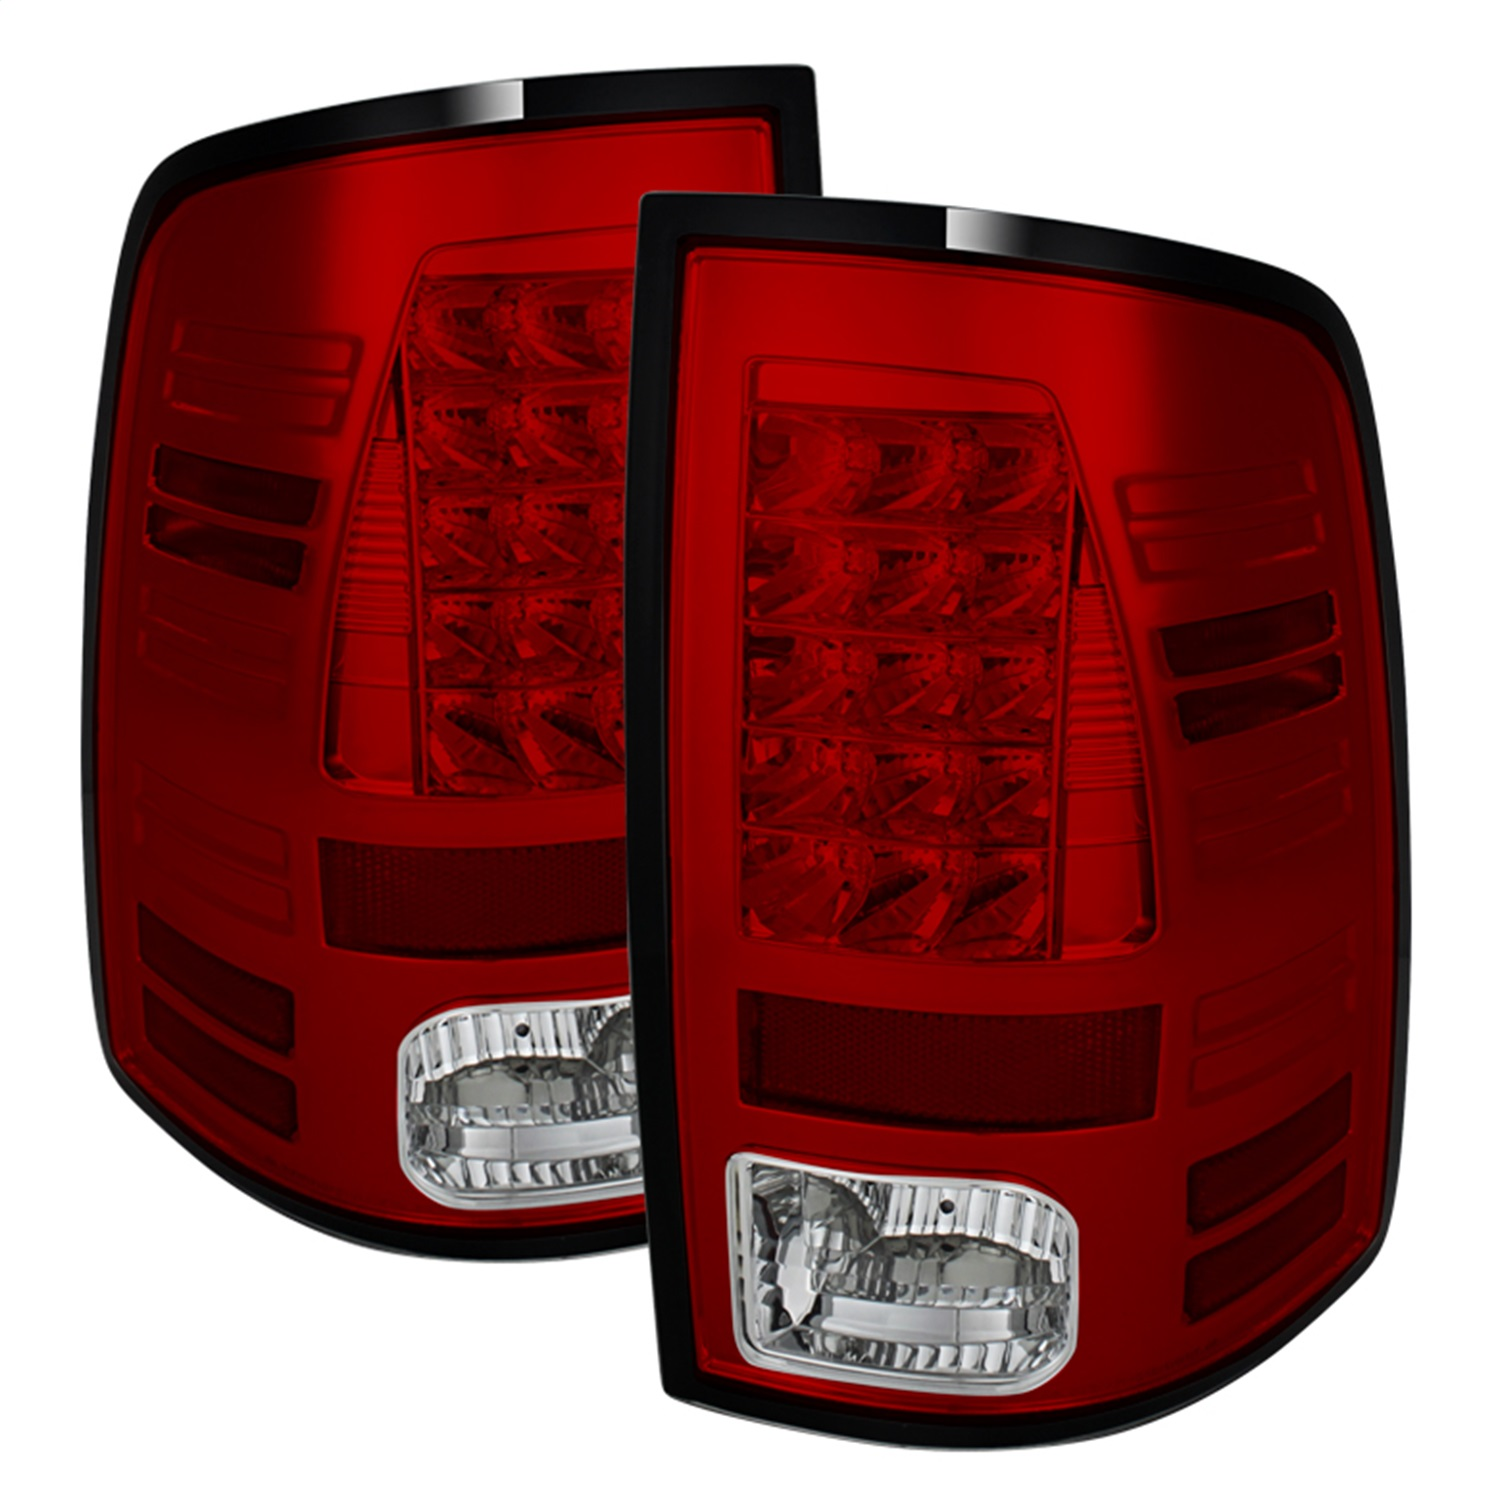 Spyder Auto 5077547 LED Tail Lights Fits 13-18 1500 2500 3500